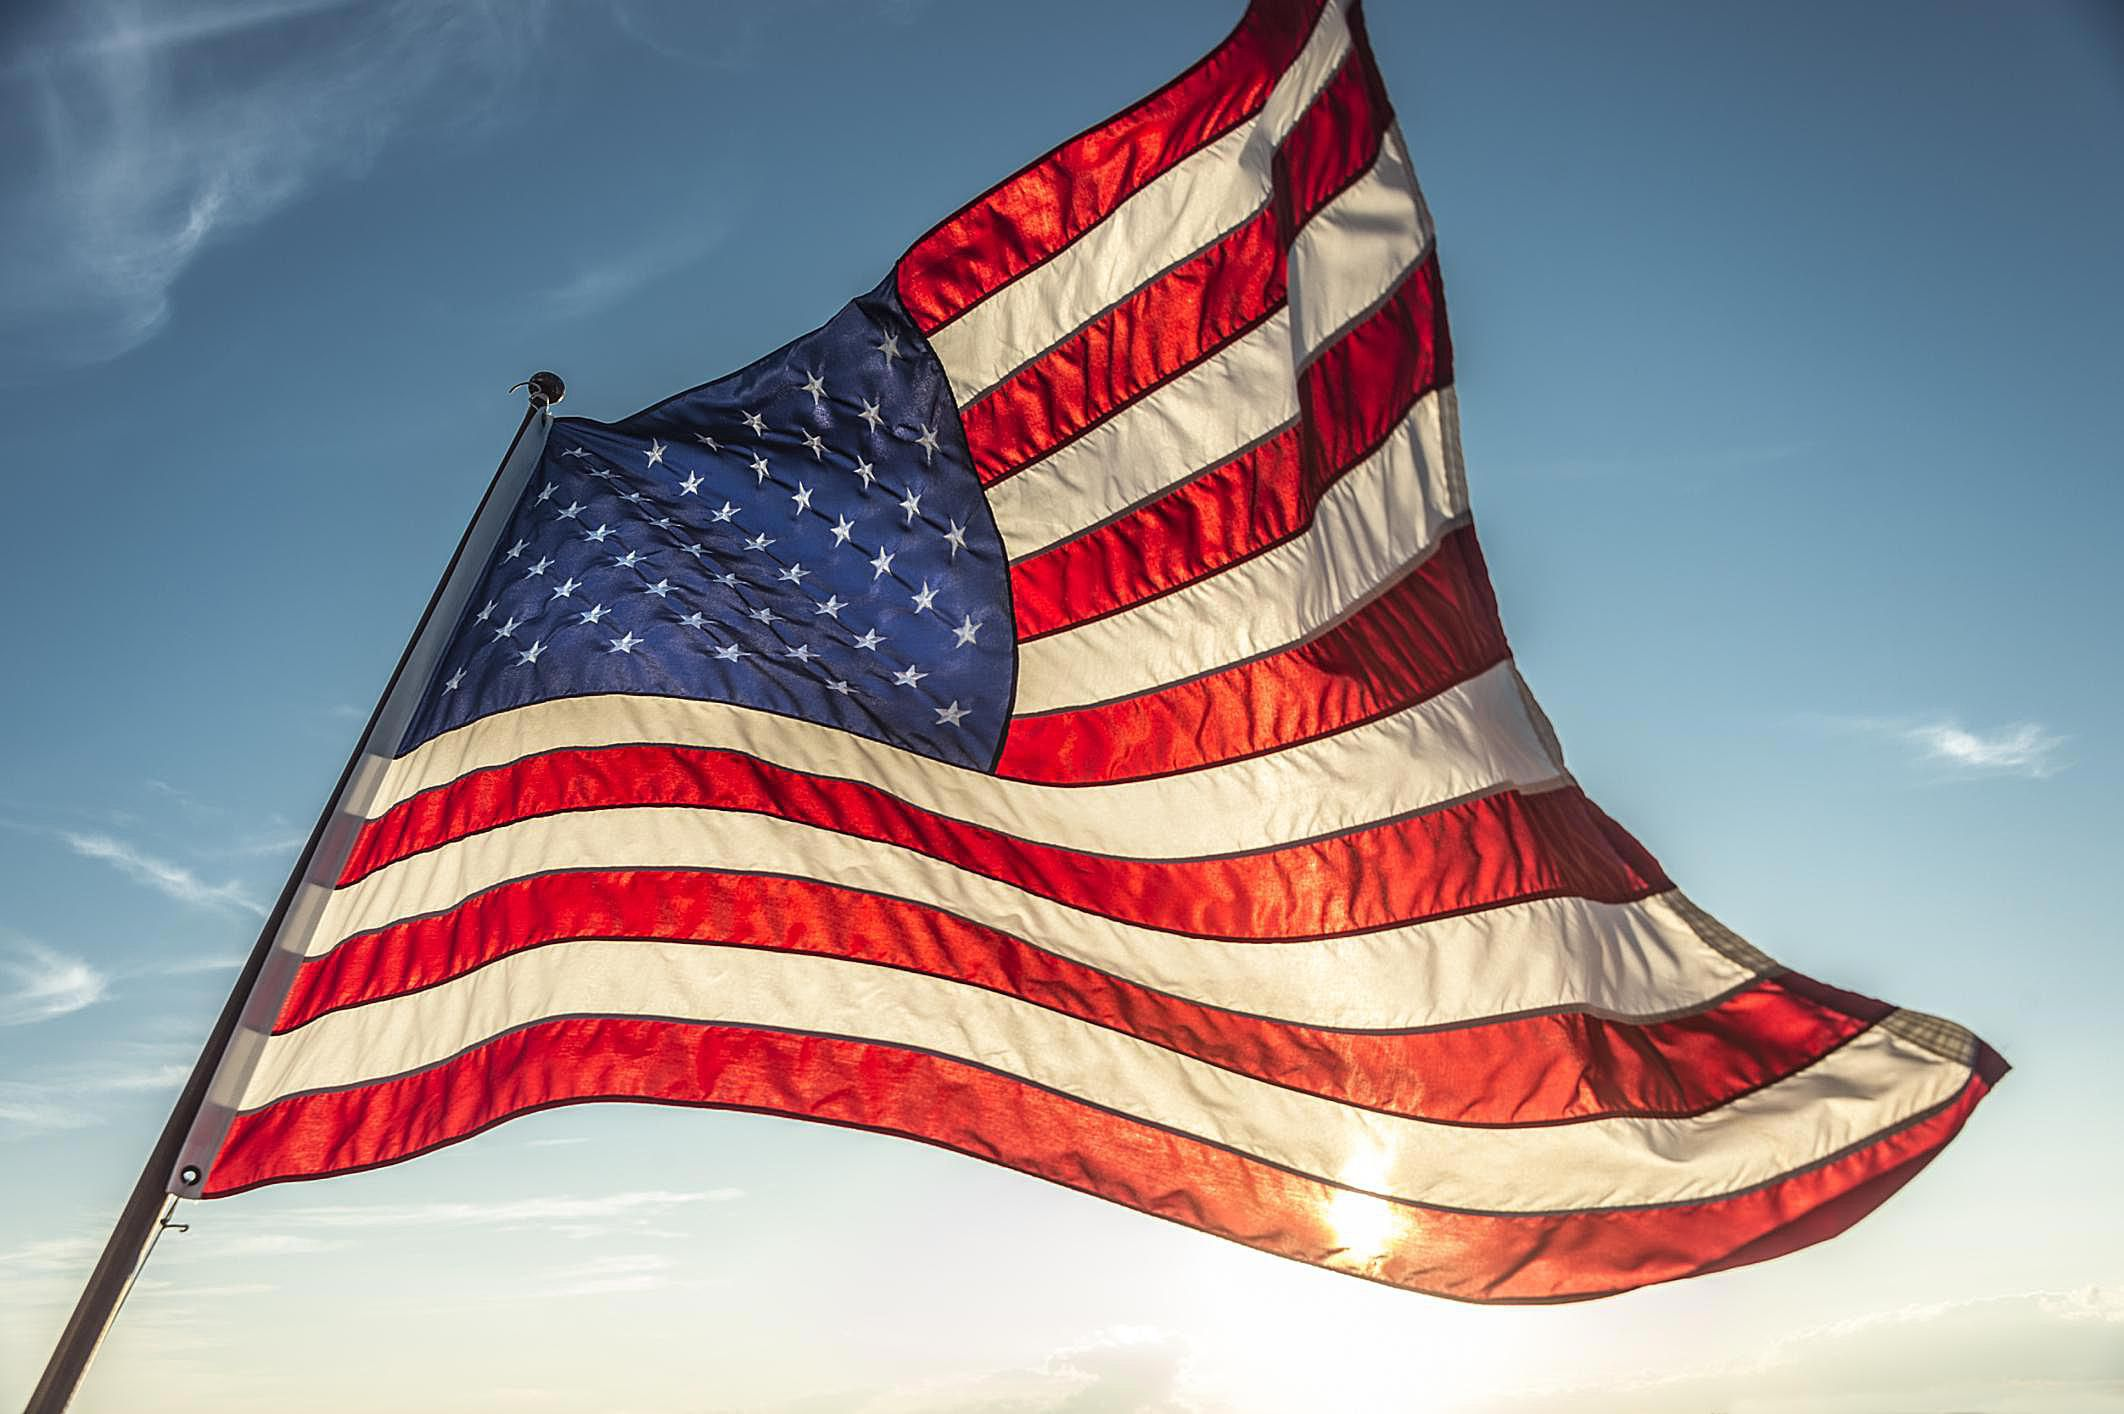 American Flag Etiquette Care and Display Guidelines